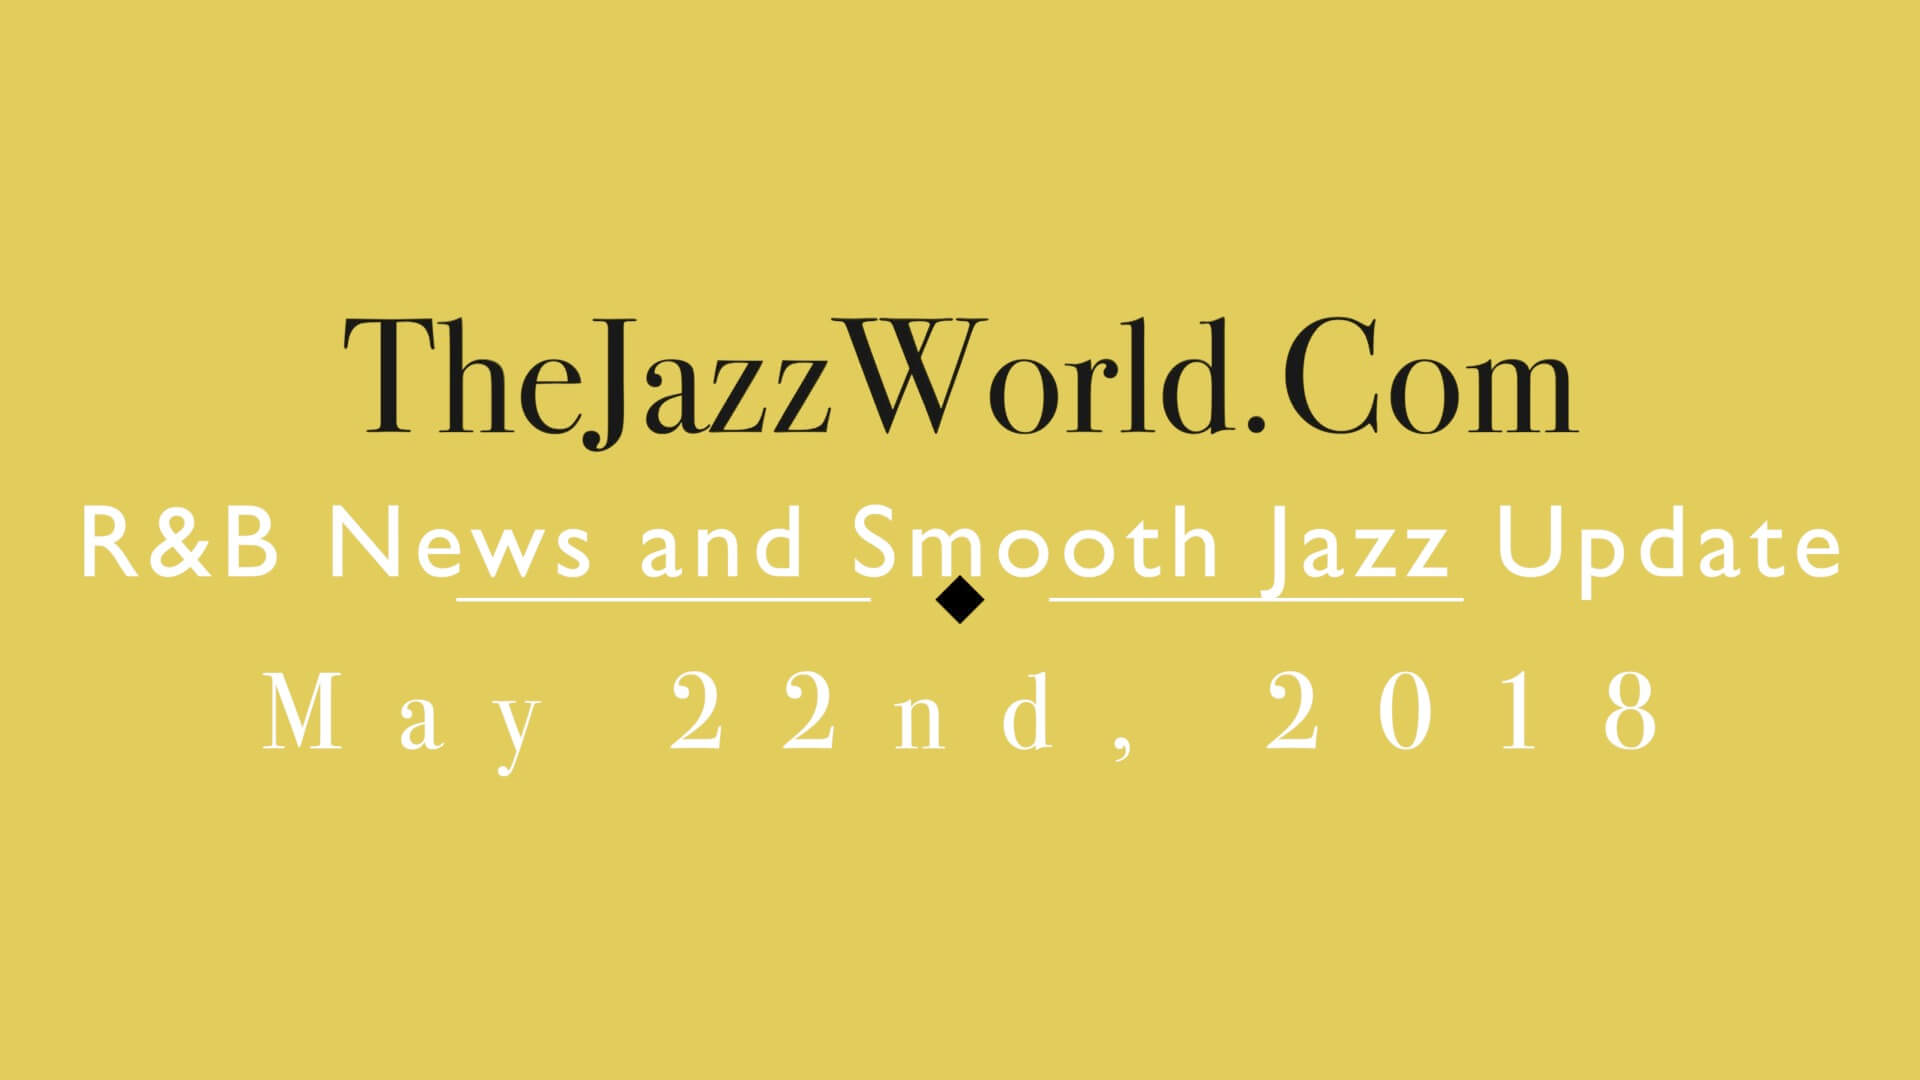 Latest R&B News and Smooth Jazz Update May 22nd